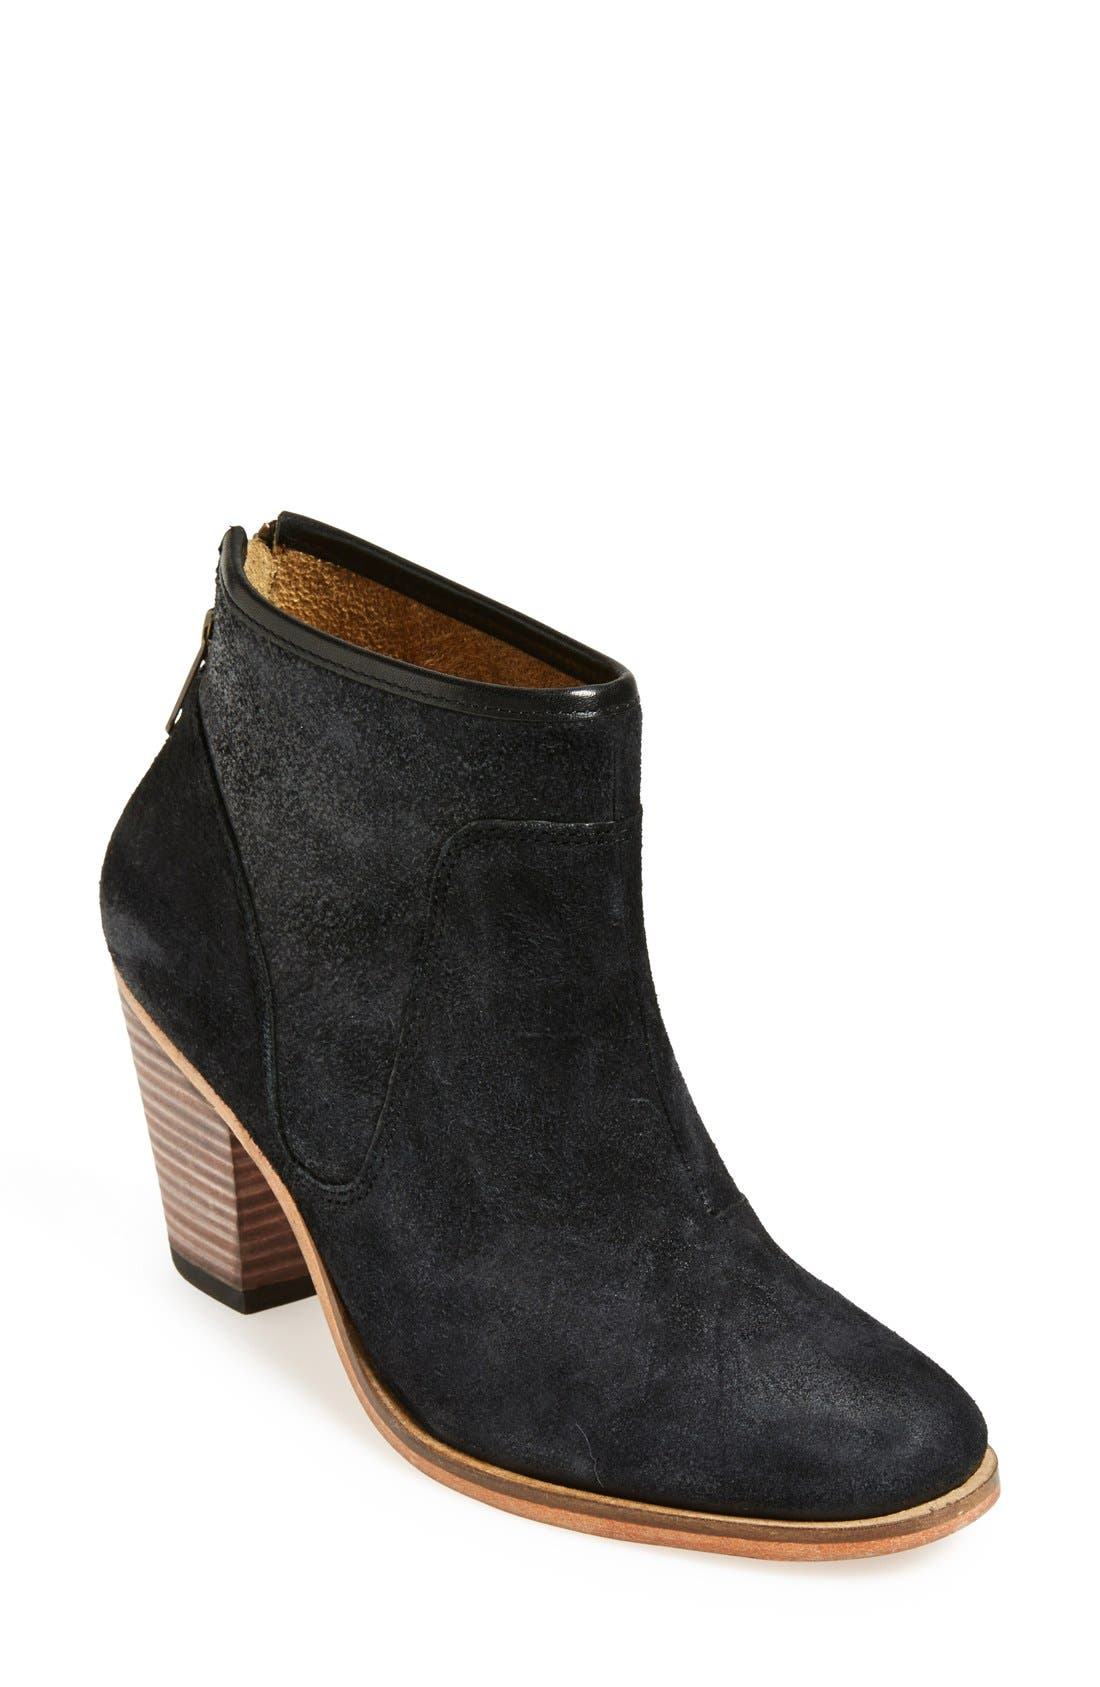 'Belgrave' Bootie,                             Main thumbnail 1, color,                             Black Distressed